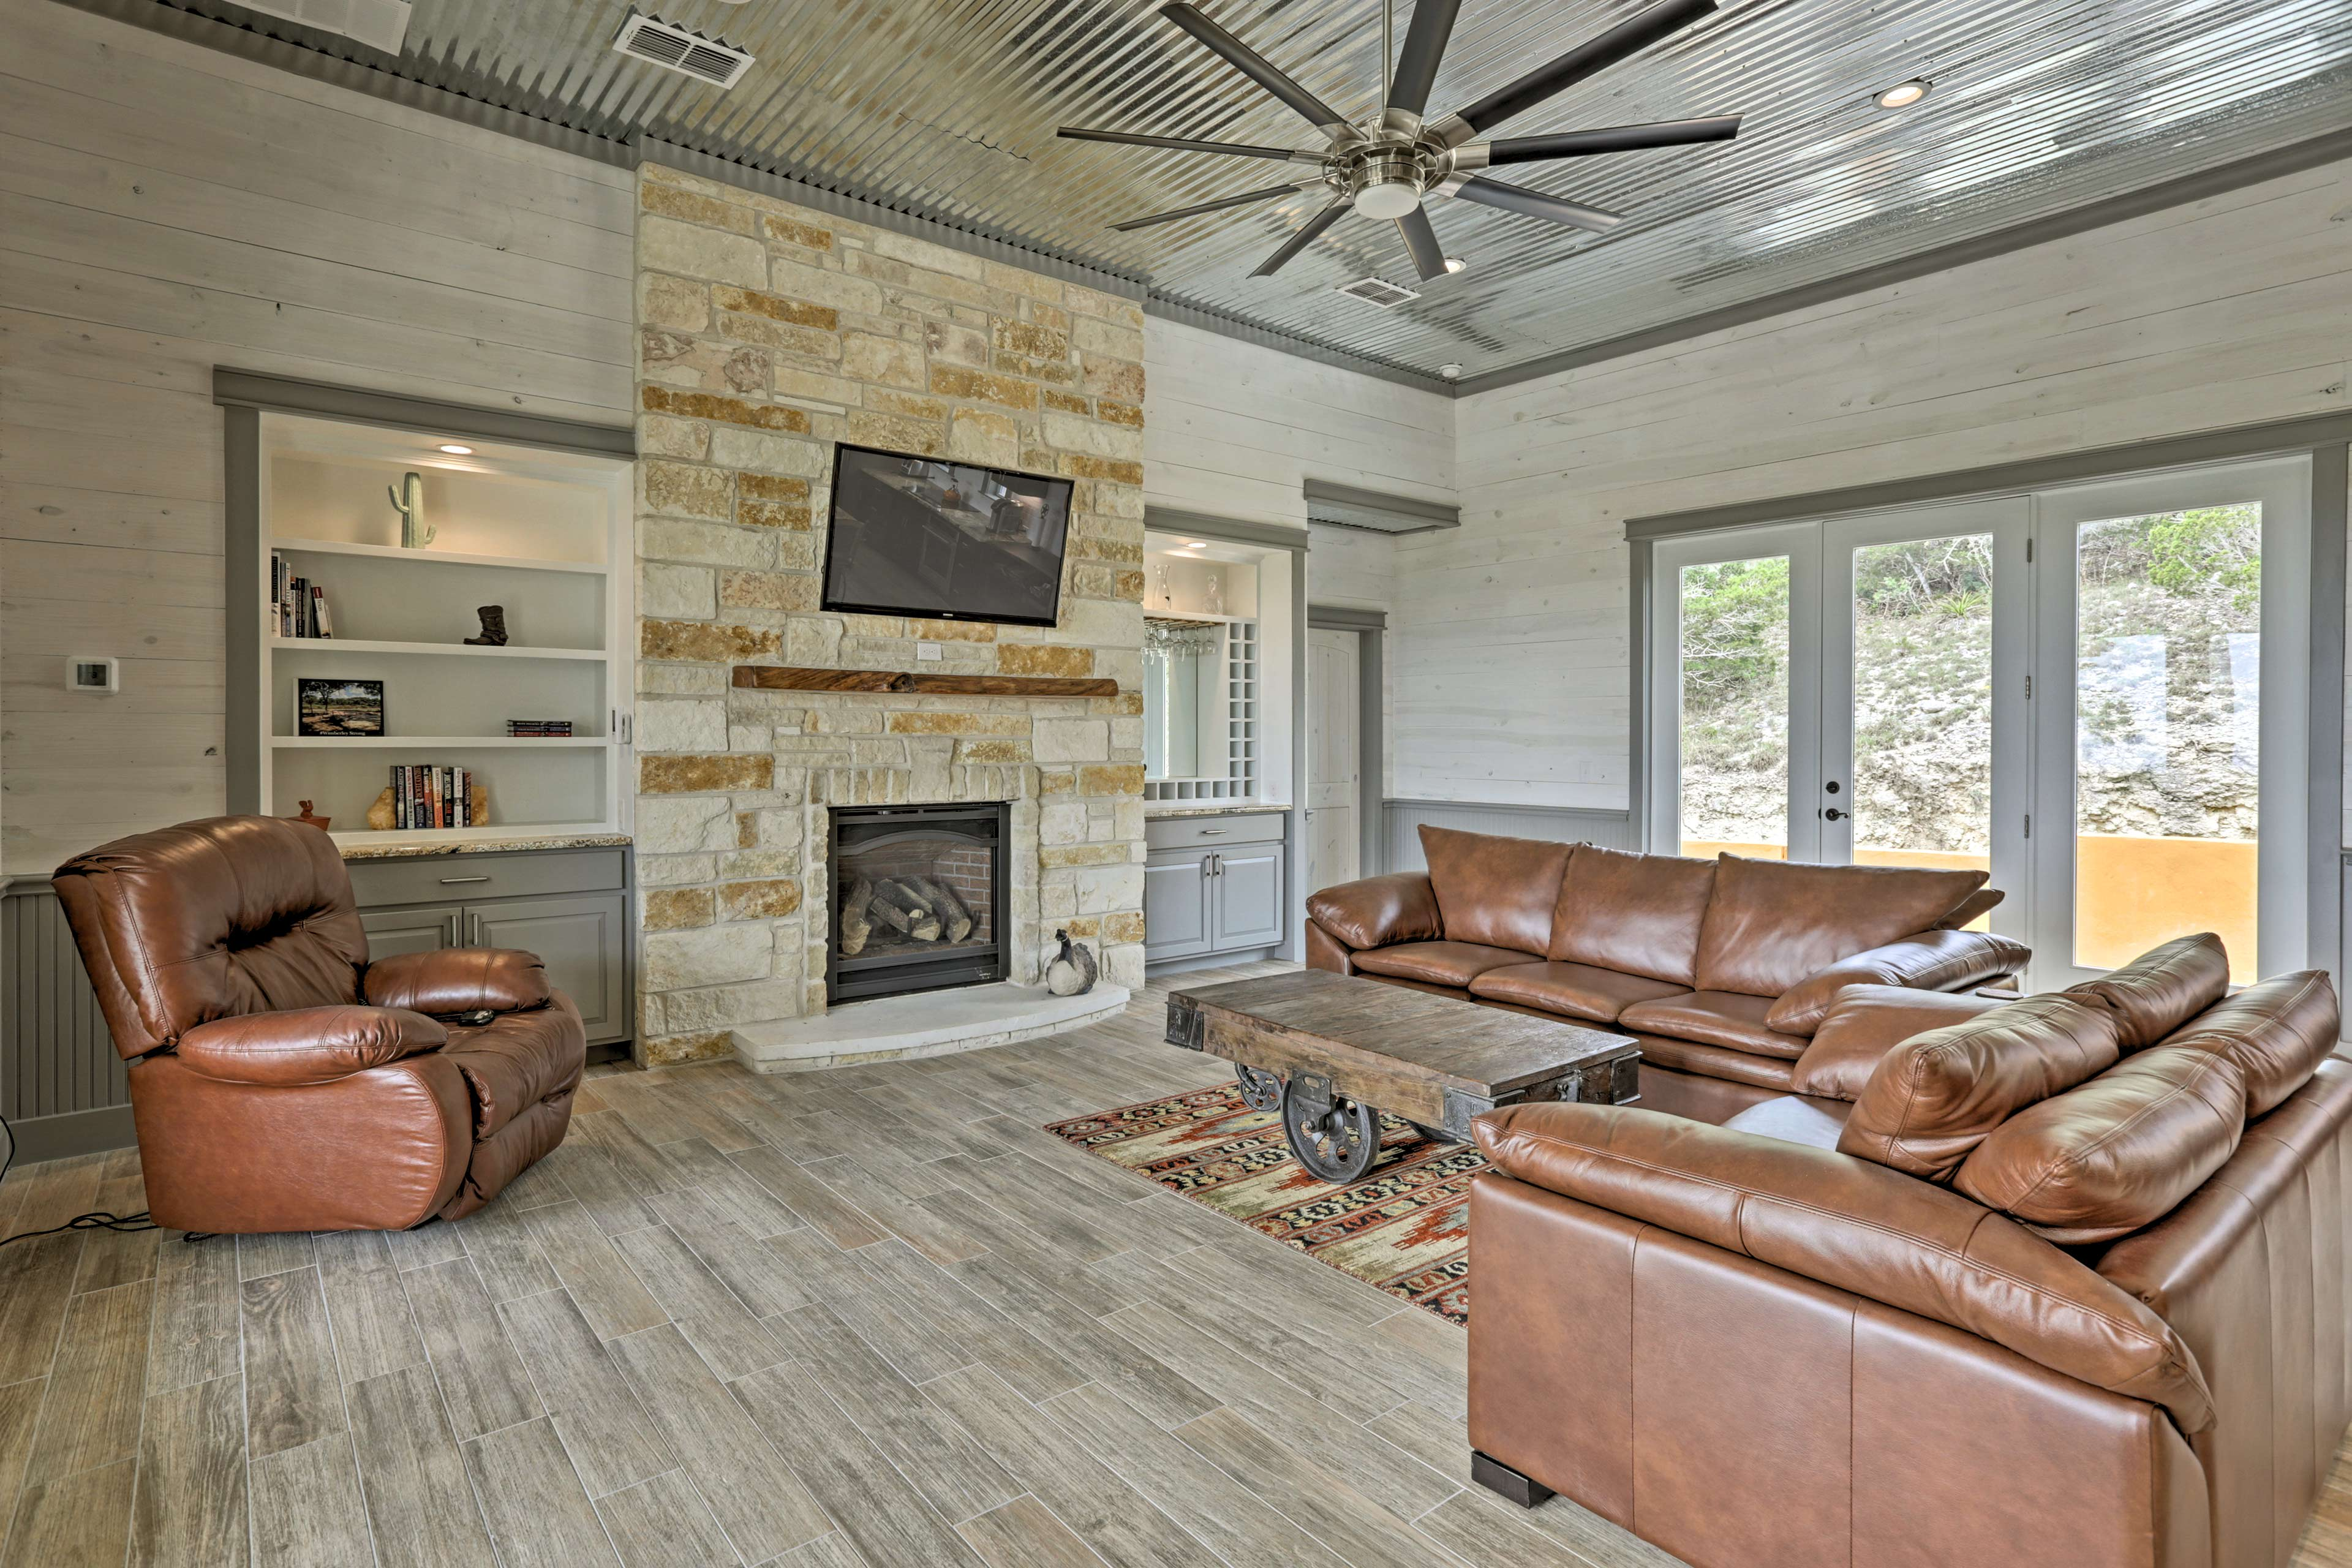 The interior features well over 2,000 square feet of newly finished living space.